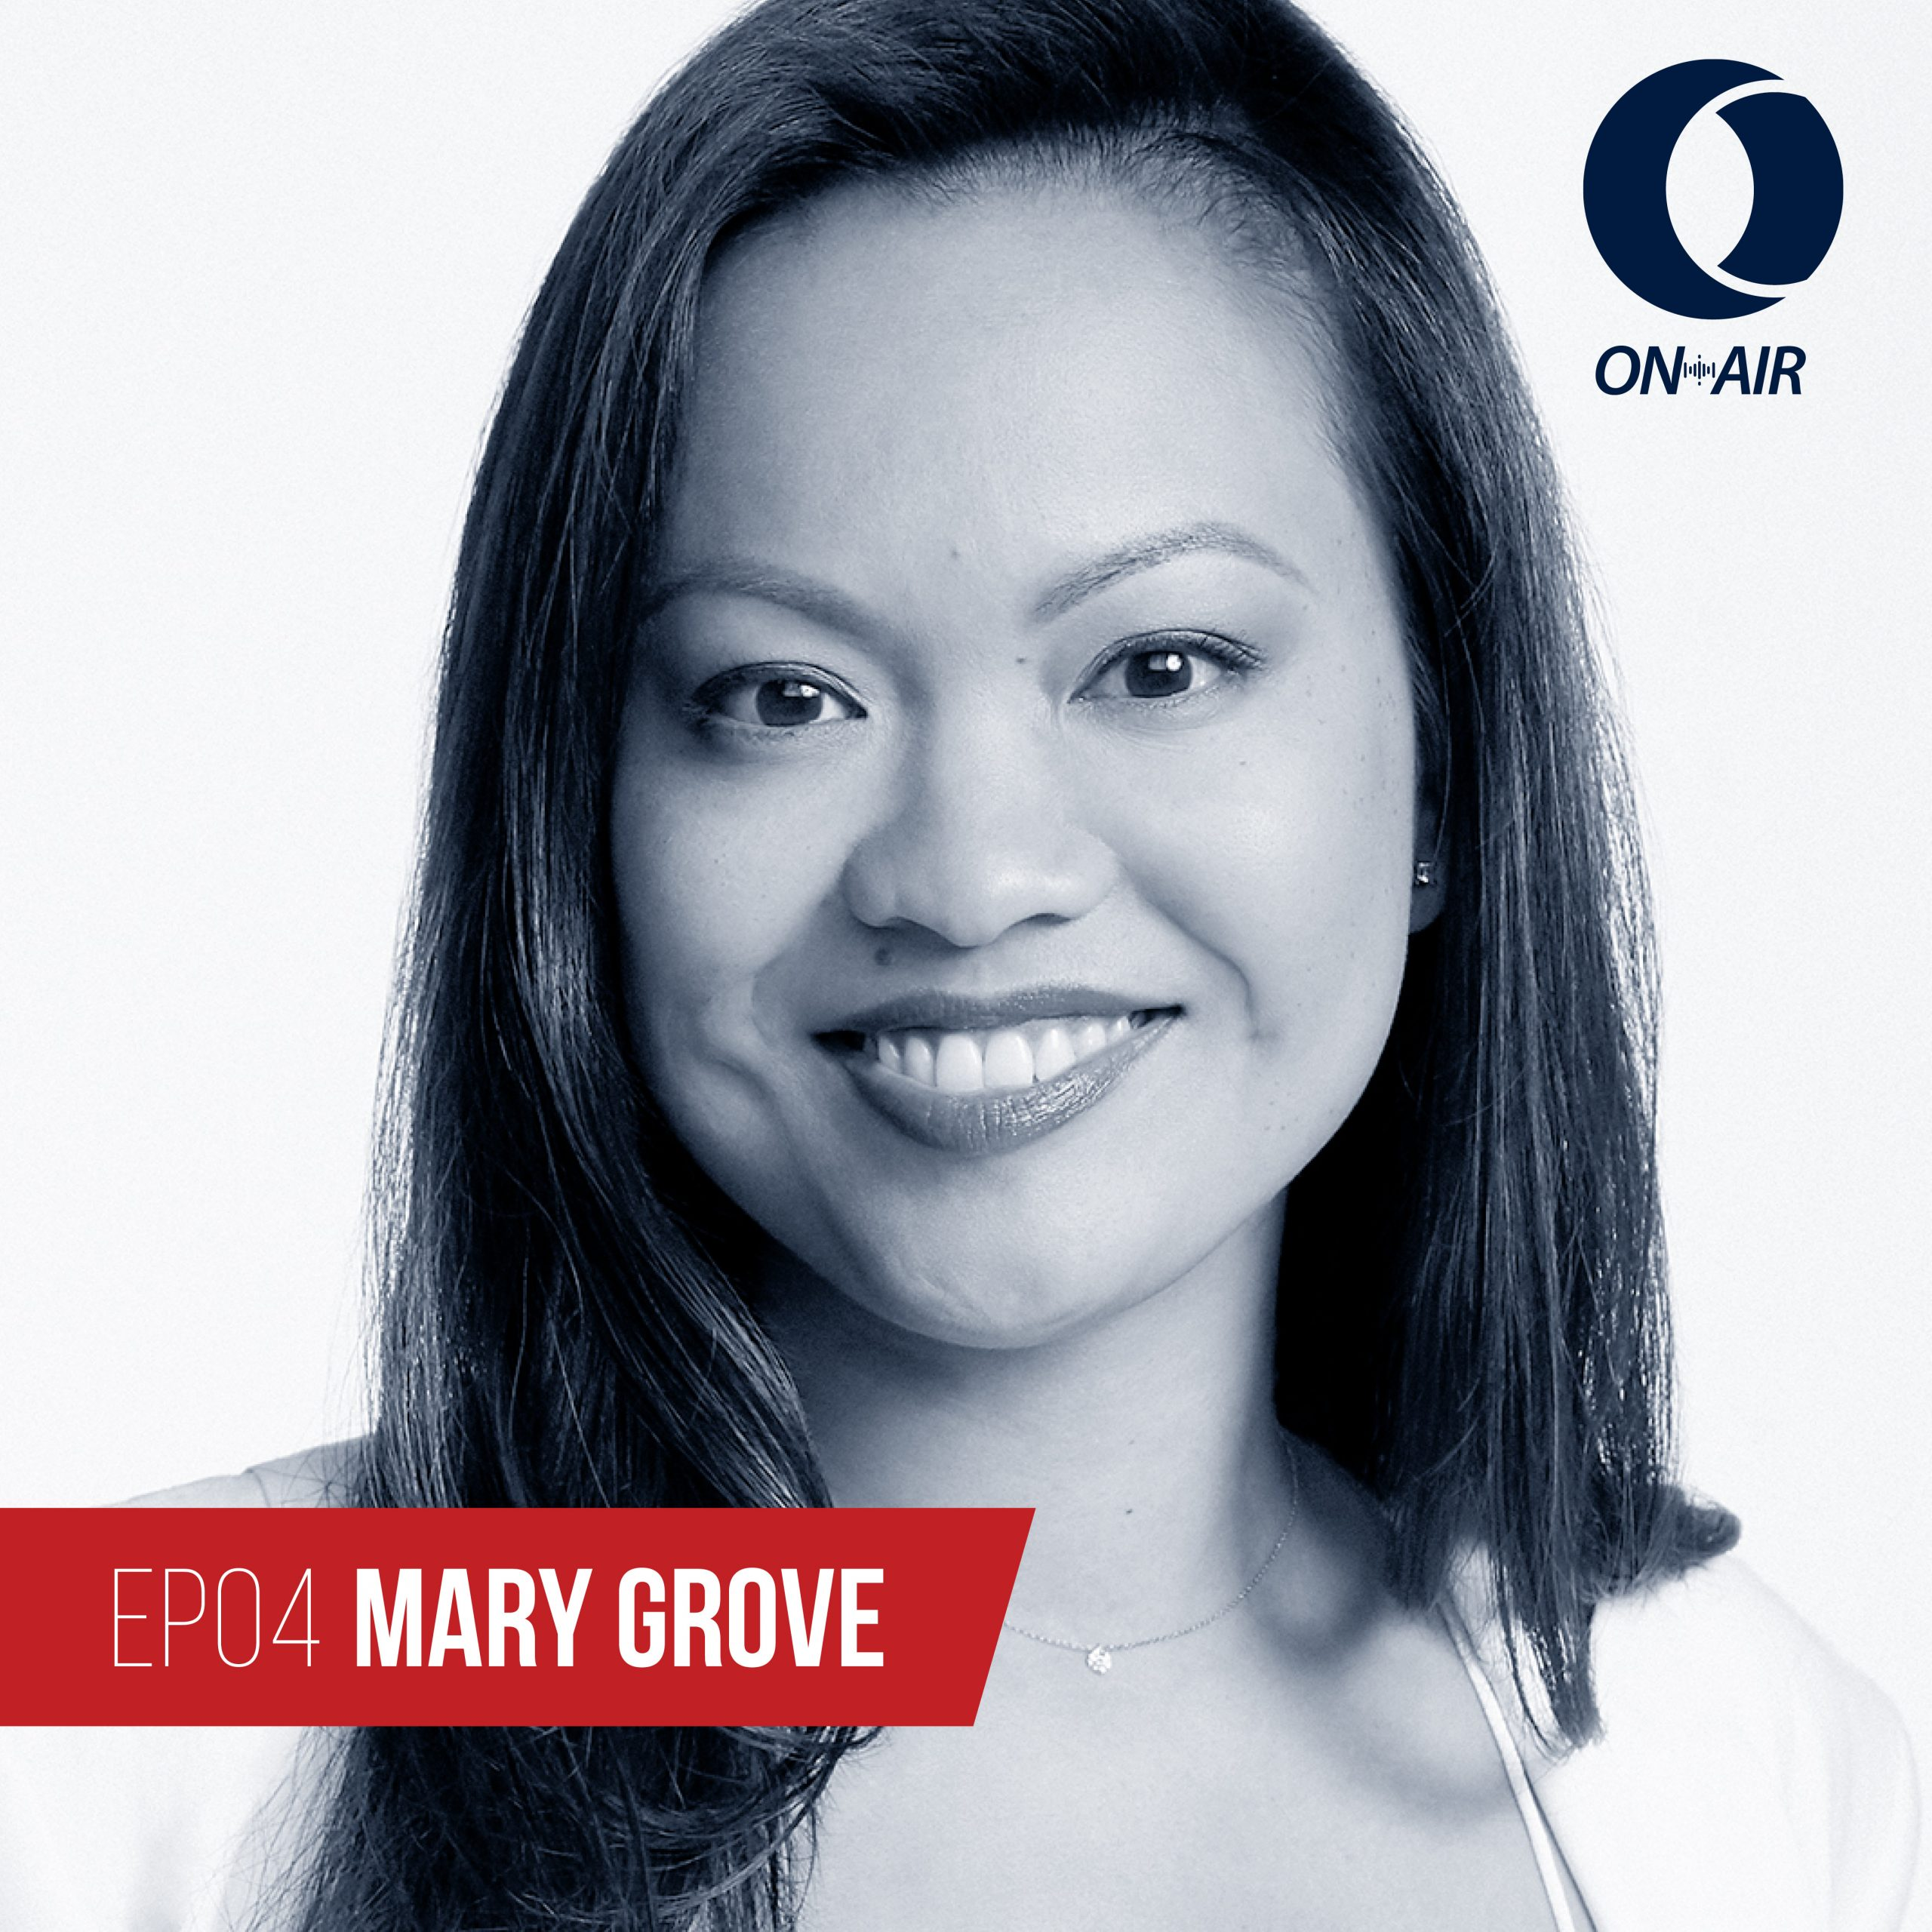 Mary Grove, Managing Partner at Bread and Butter Ventures / Co-Founder of Silicon North Stars